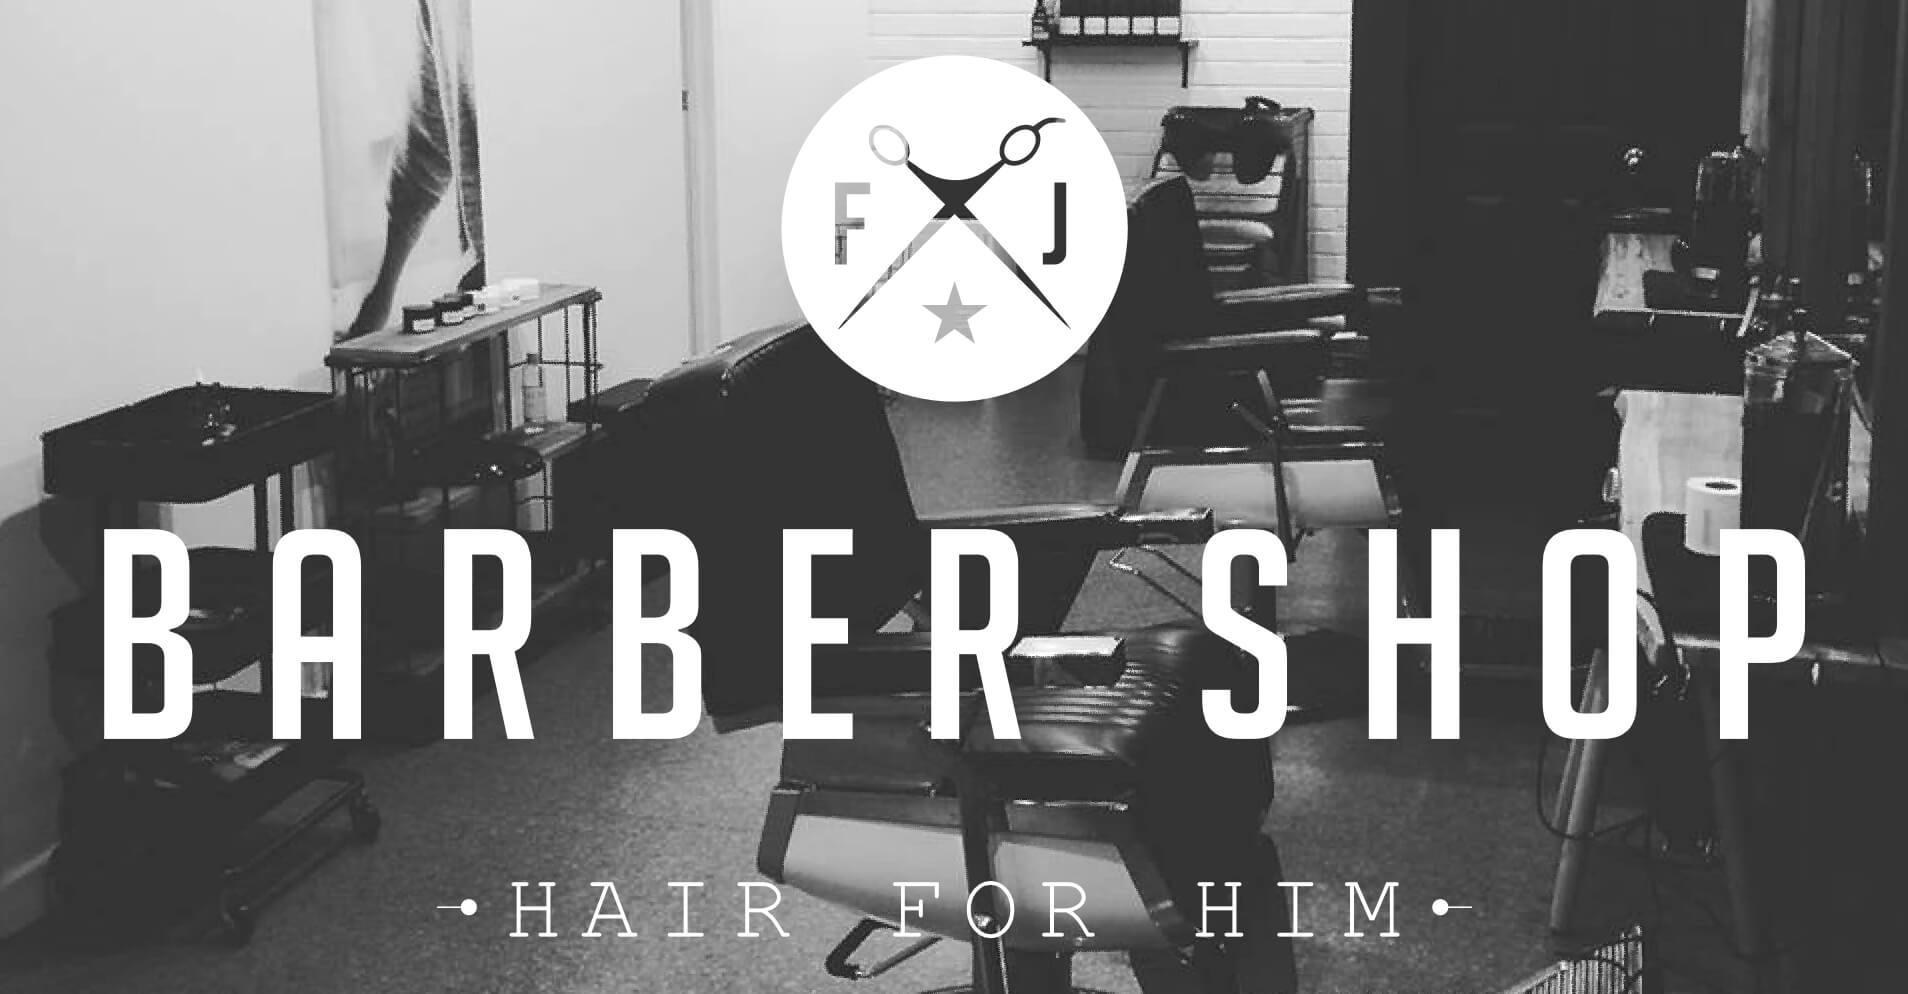 FJ-Barber-Shop-logo90